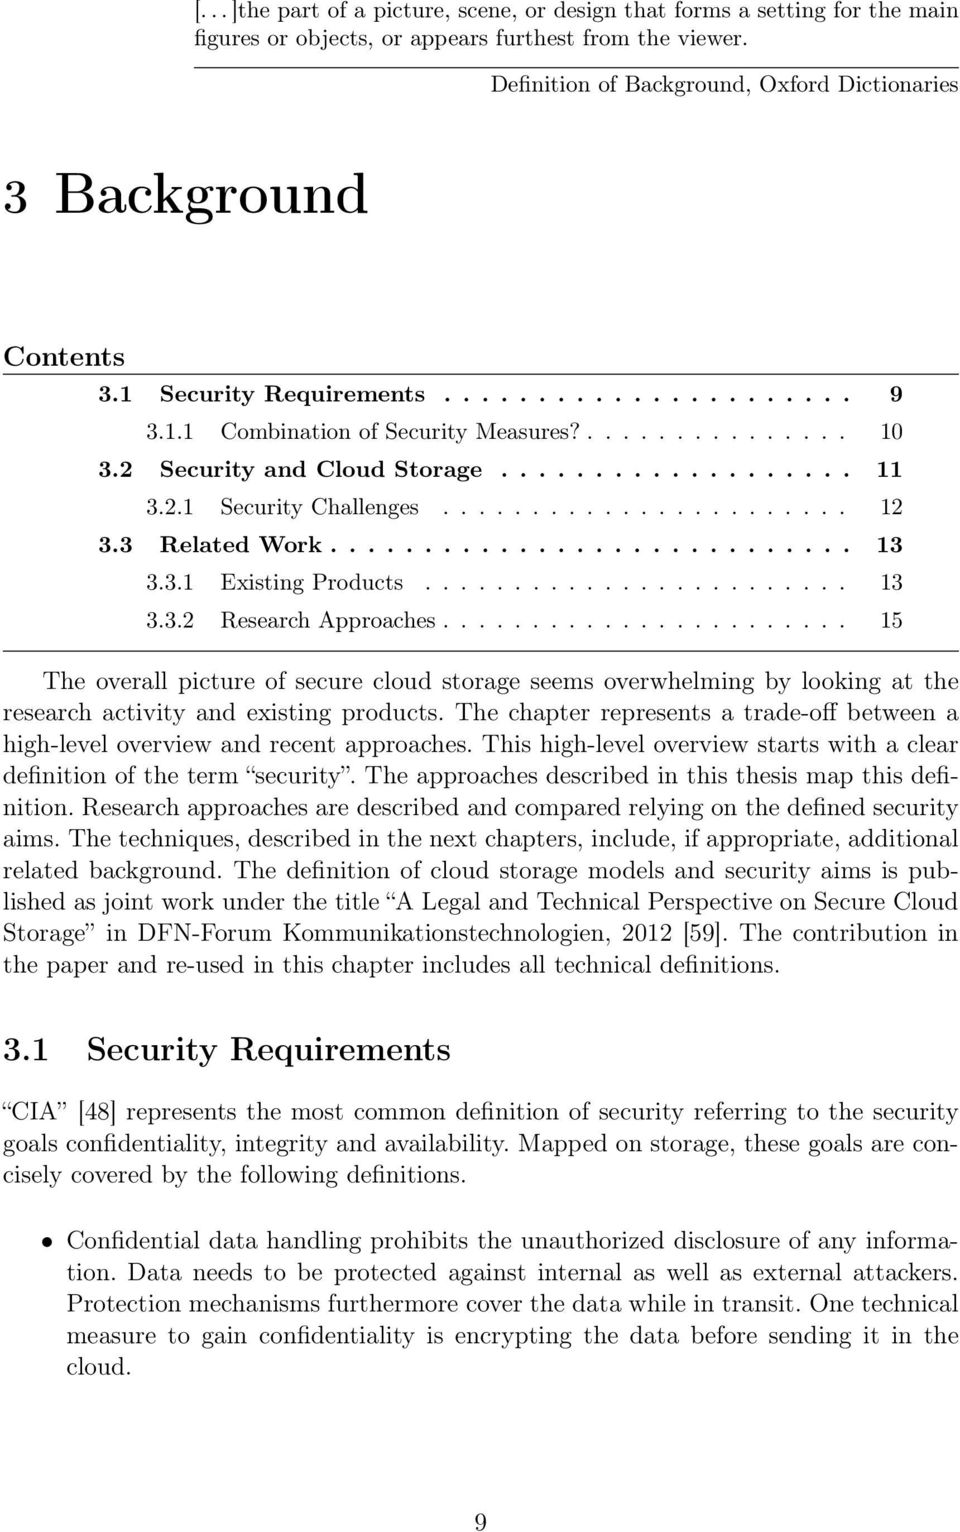 2 Security and Cloud Storage................... 11 3.2.1 Security Challenges....................... 12 3.3 Related Work............................ 13 3.3.1 Existing Products........................ 13 3.3.2 Research Approaches.